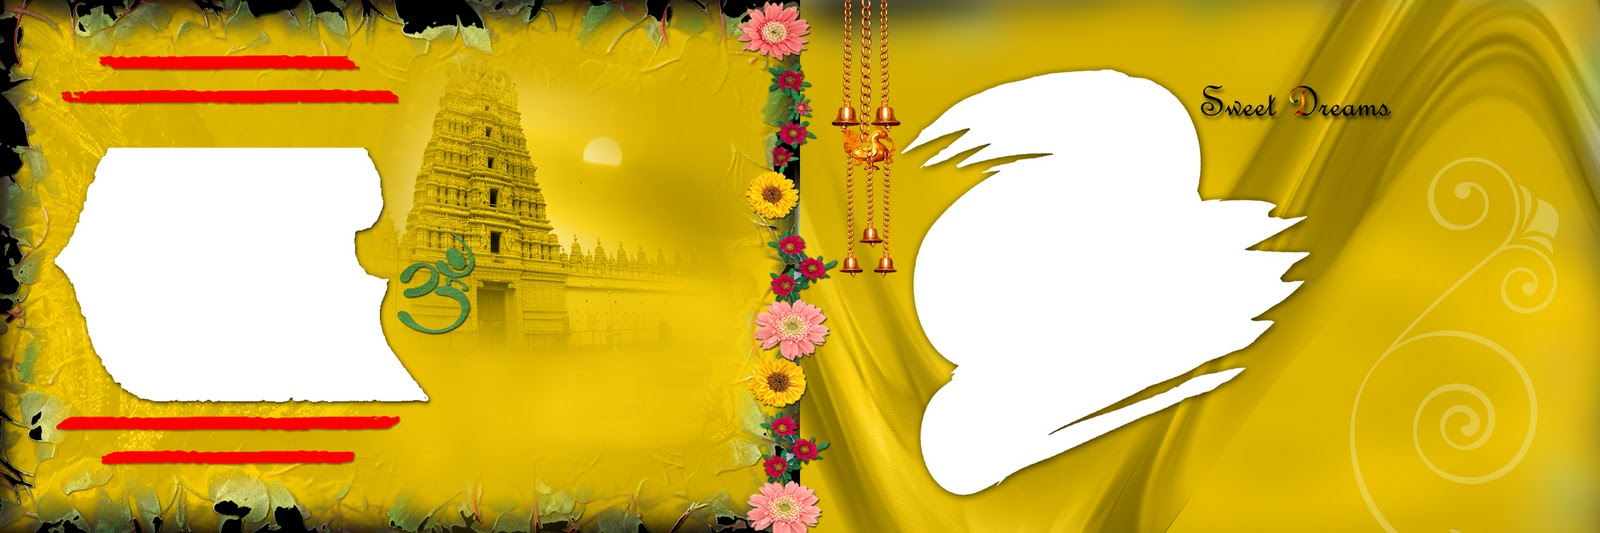 Studio Backgrounds Indian Movie Mixing Frames